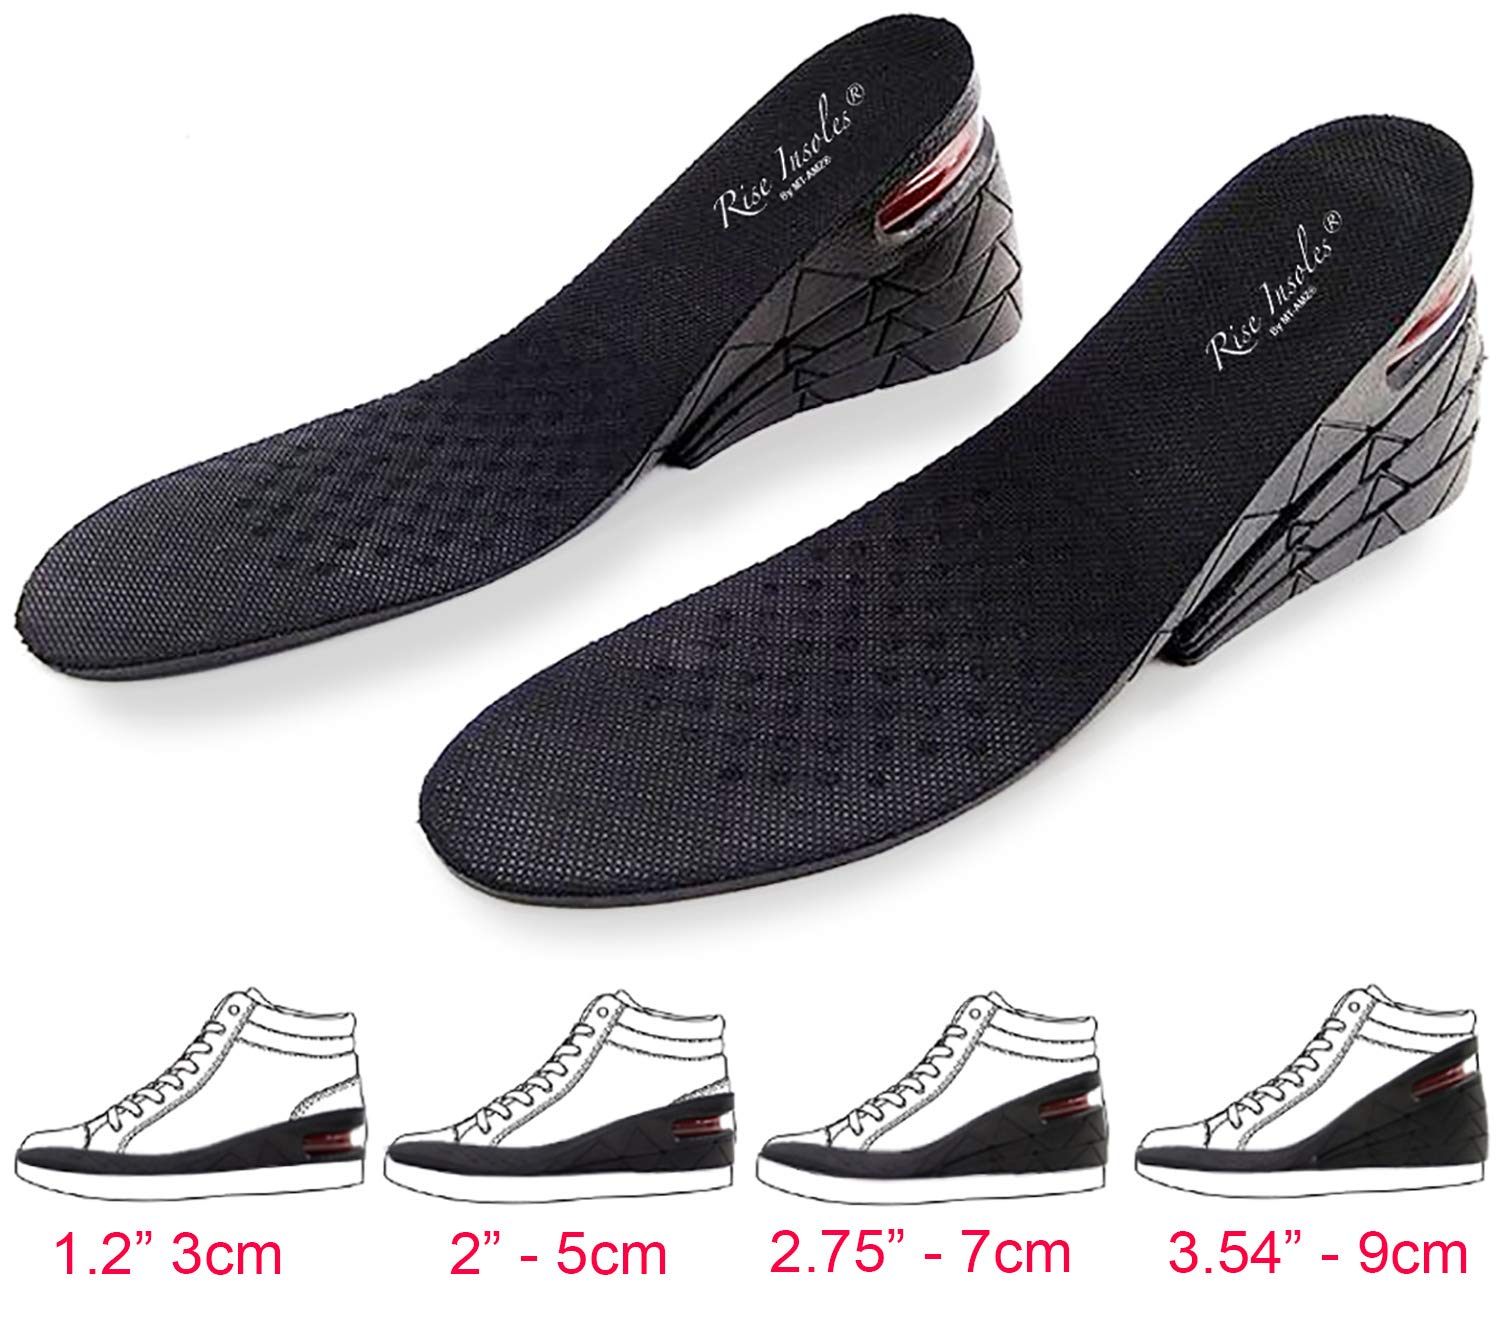 "Height Increase Insoles, 4-Layer Orthotic Heel Shoe Lift kit with Air Cushion Elevator Shoe Insole Lifts Kits Inserts for Men & Women Taller Insoles 1.2"" to 3.5"" Variable Height Adjustable"